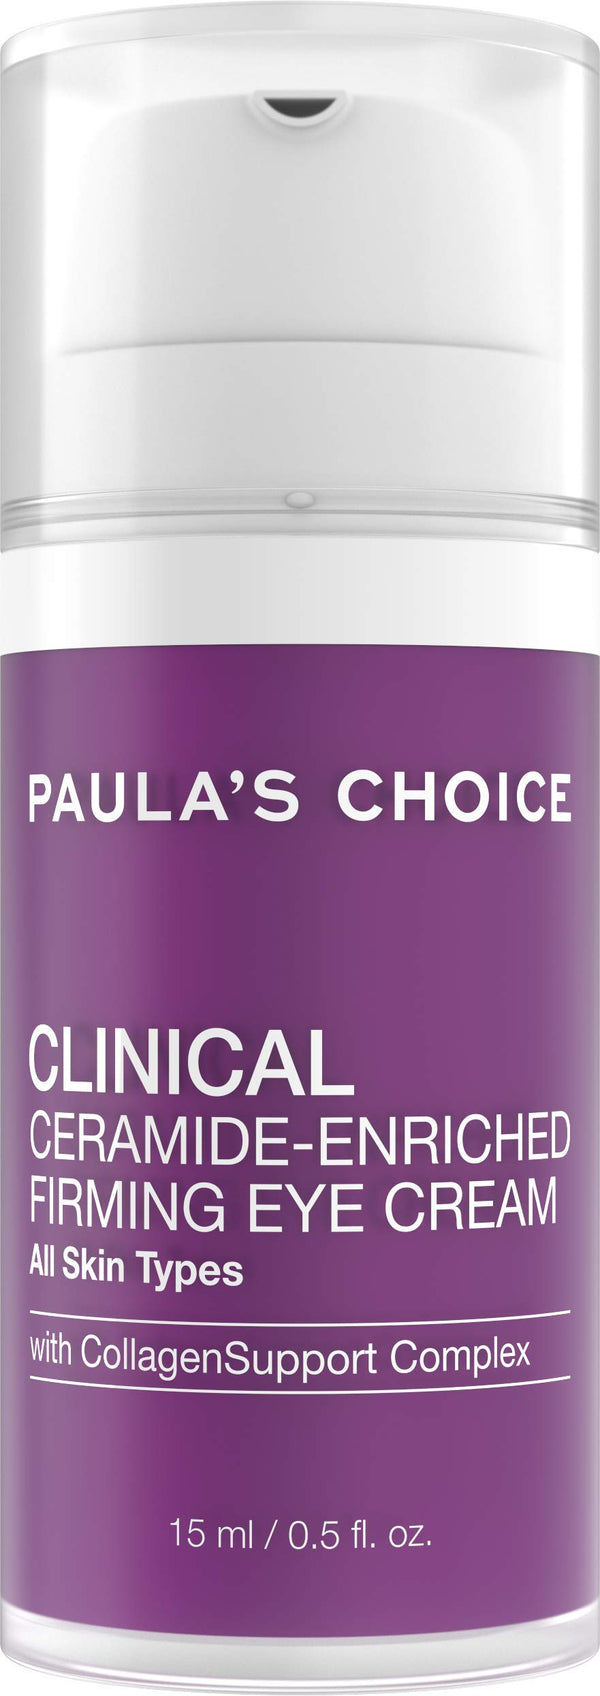 Paula's Choice CLINICAL Ceramide Firming Eye Cream with Vitamin C and Retinol, for Fine Lines, Wrinkles and Loss of Firmness